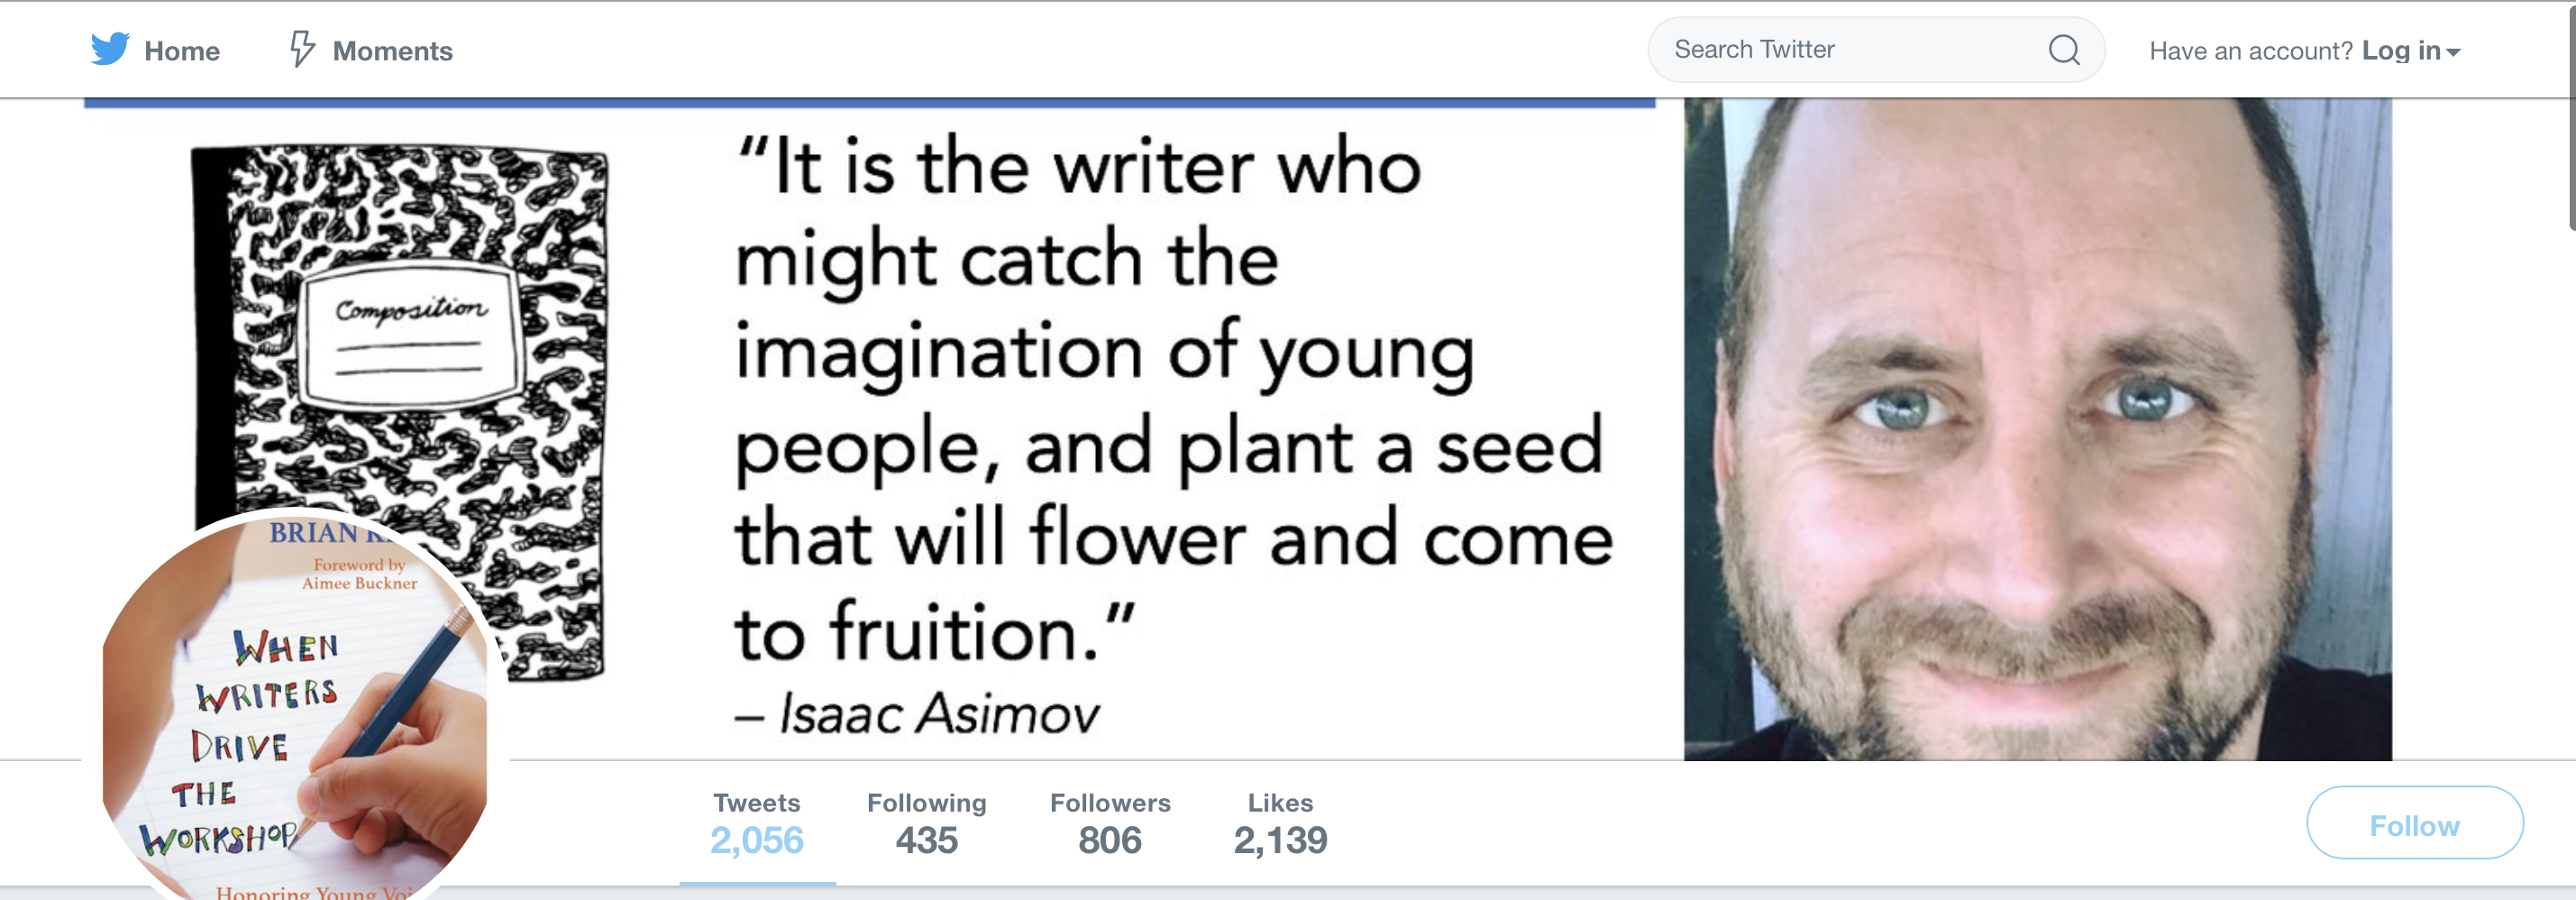 Brian s twitter page quote by isaac asimov further reflects his spirit of resolve